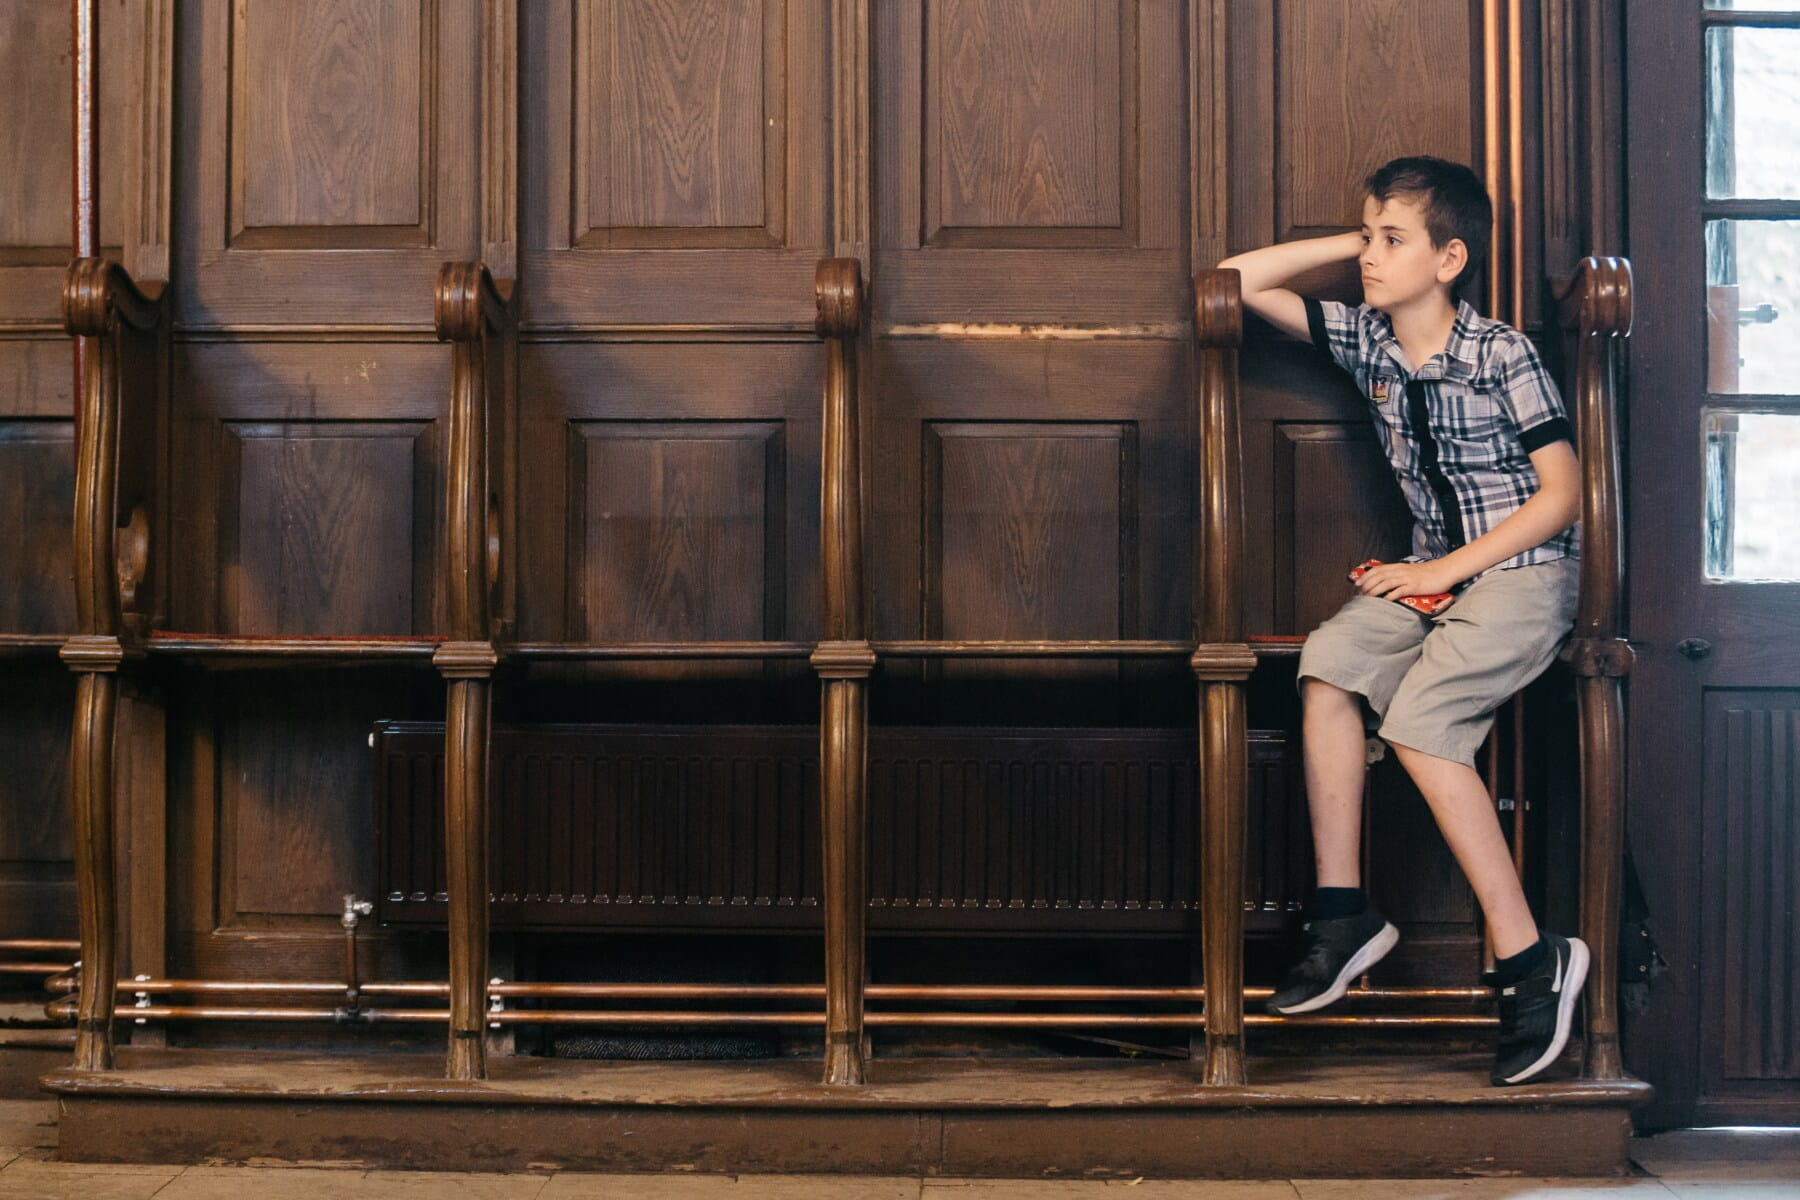 think, teenager, church, sitting, boy, teenage, chairs, side view, portrait, door